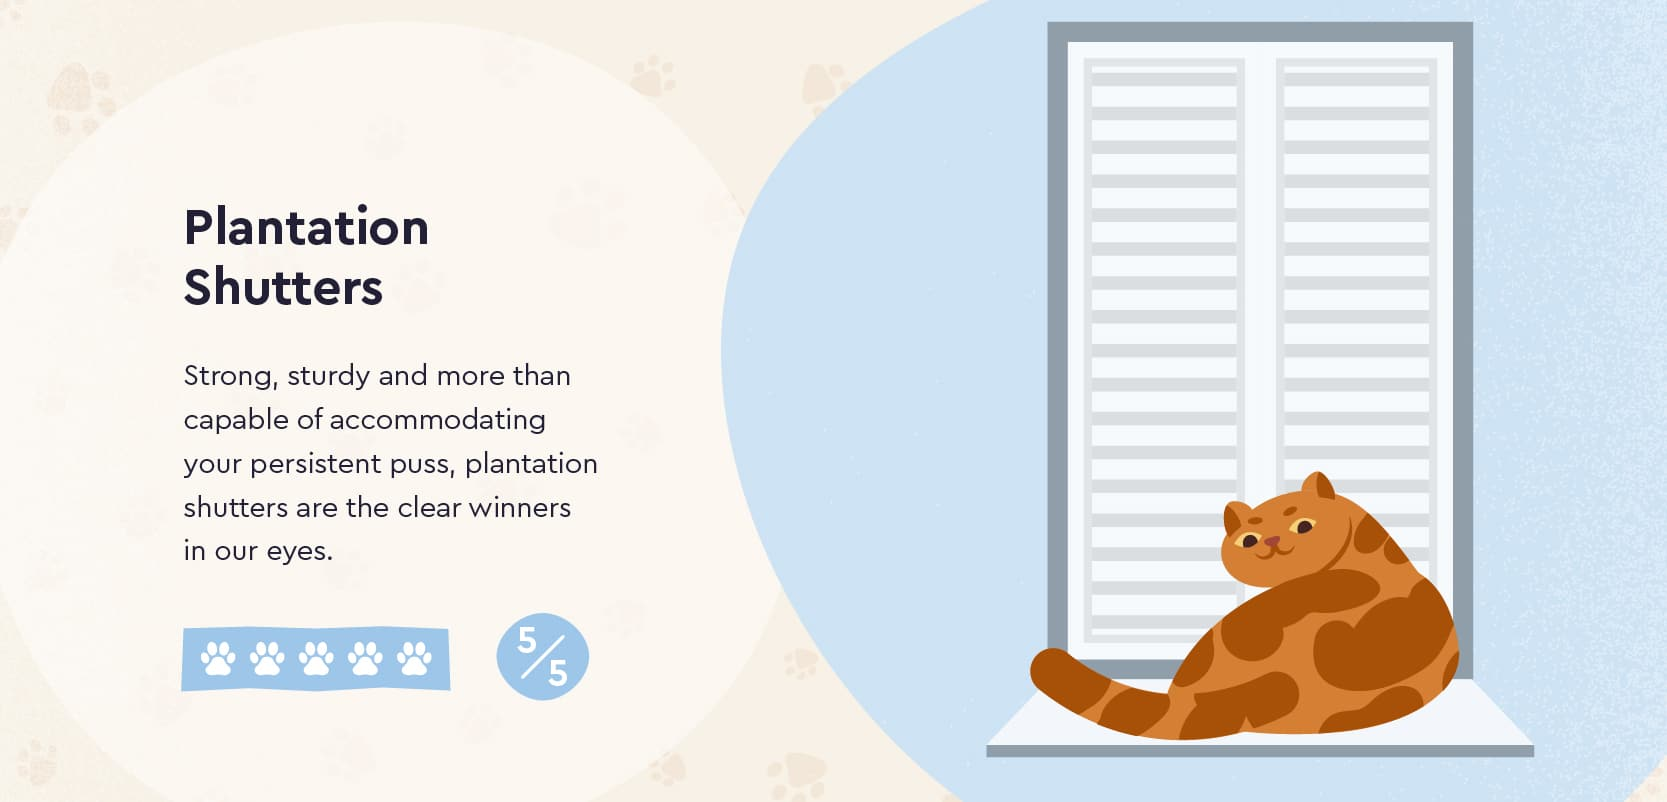 Plantation Shutters are great for cat owners